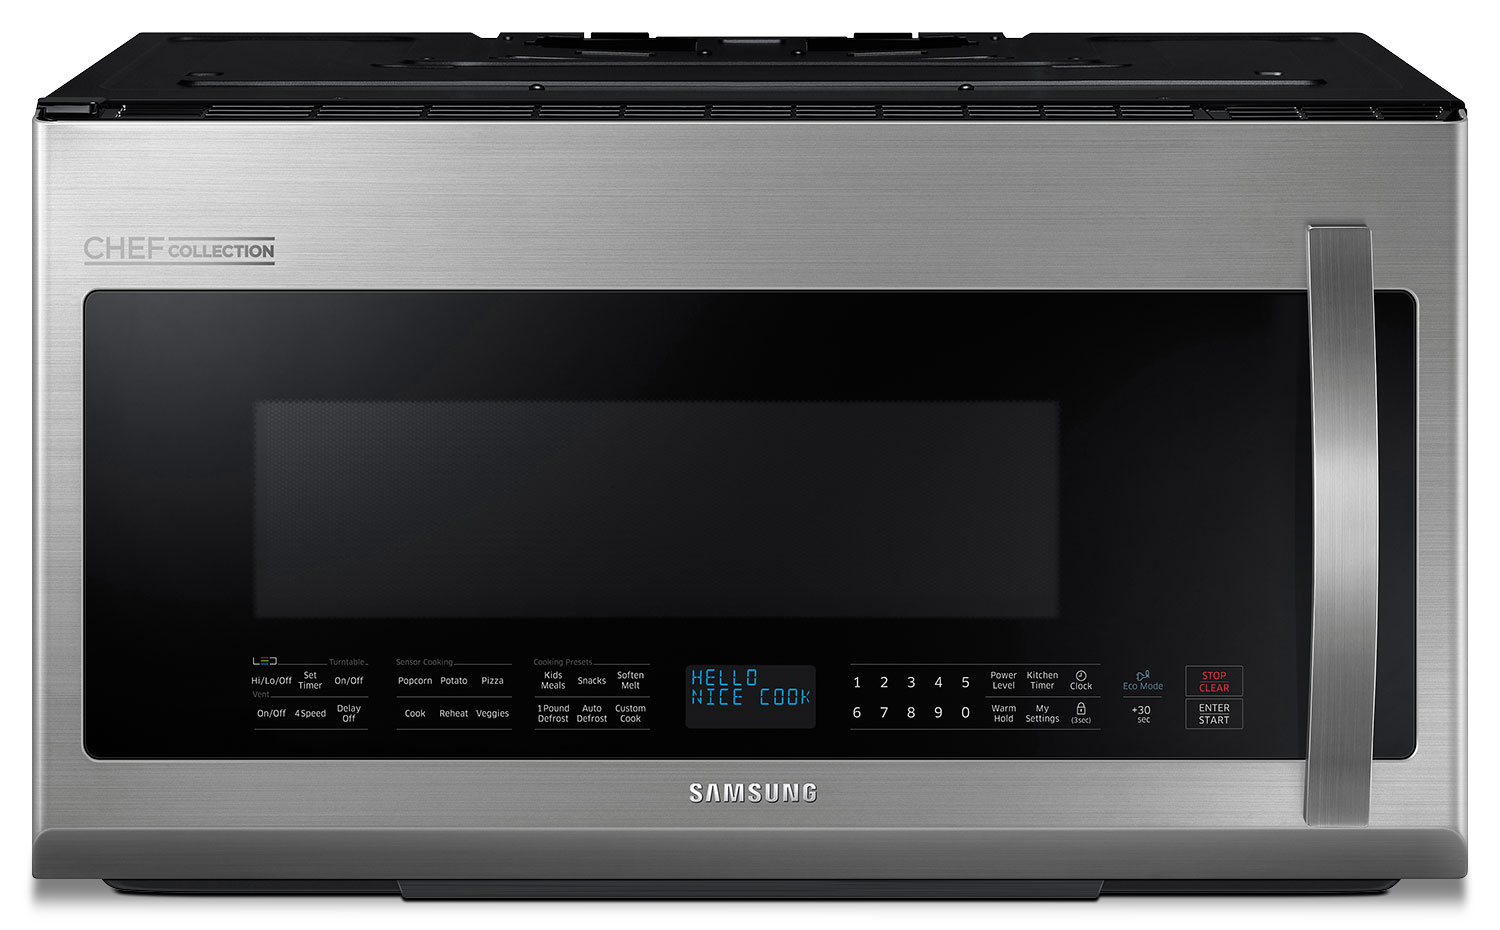 Samsung 2.1 Cu. Ft. Chef Collection Over-the-Range Microwave – Stainless Steel